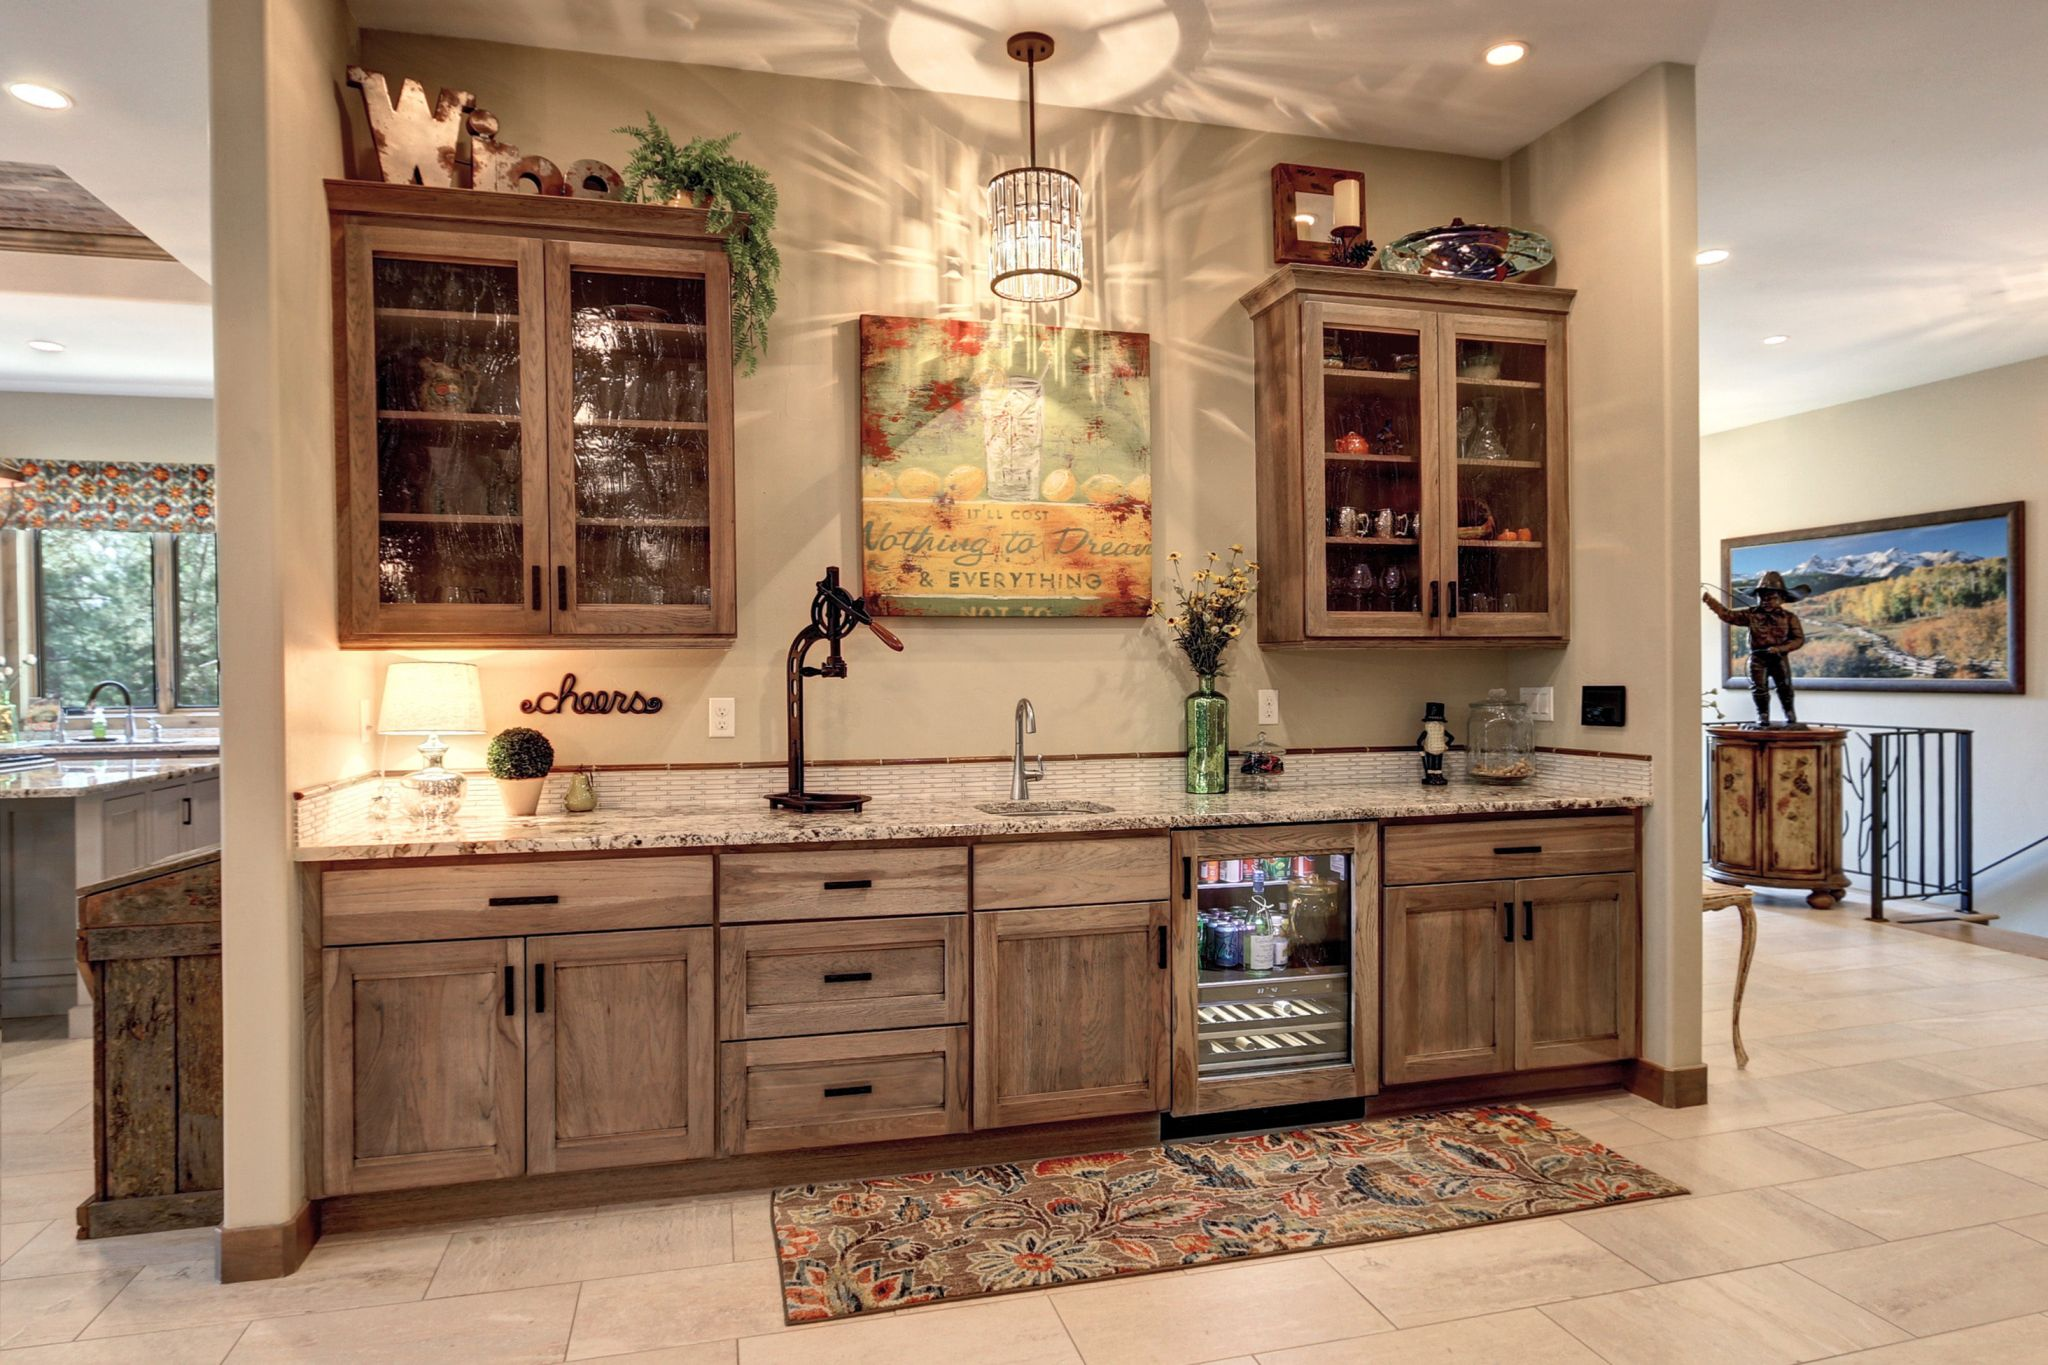 Crystal Kitchen Cabinets Cost